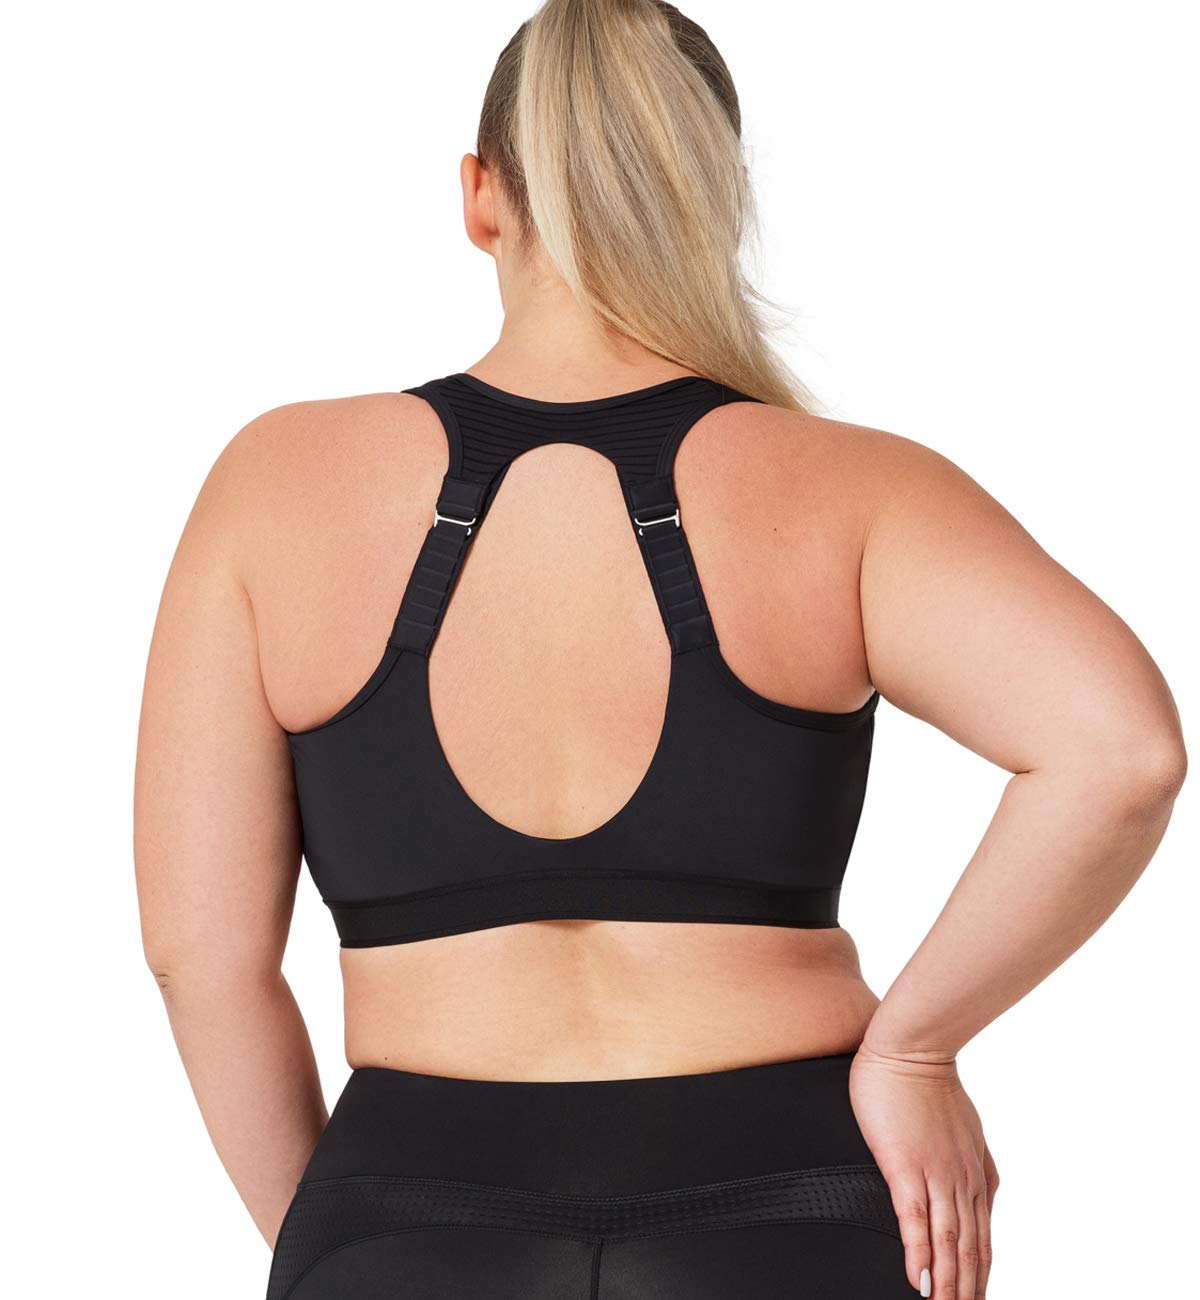 Yvette Breast Support Band Adjustable High Impact Sports Bra Strap No-Bounce